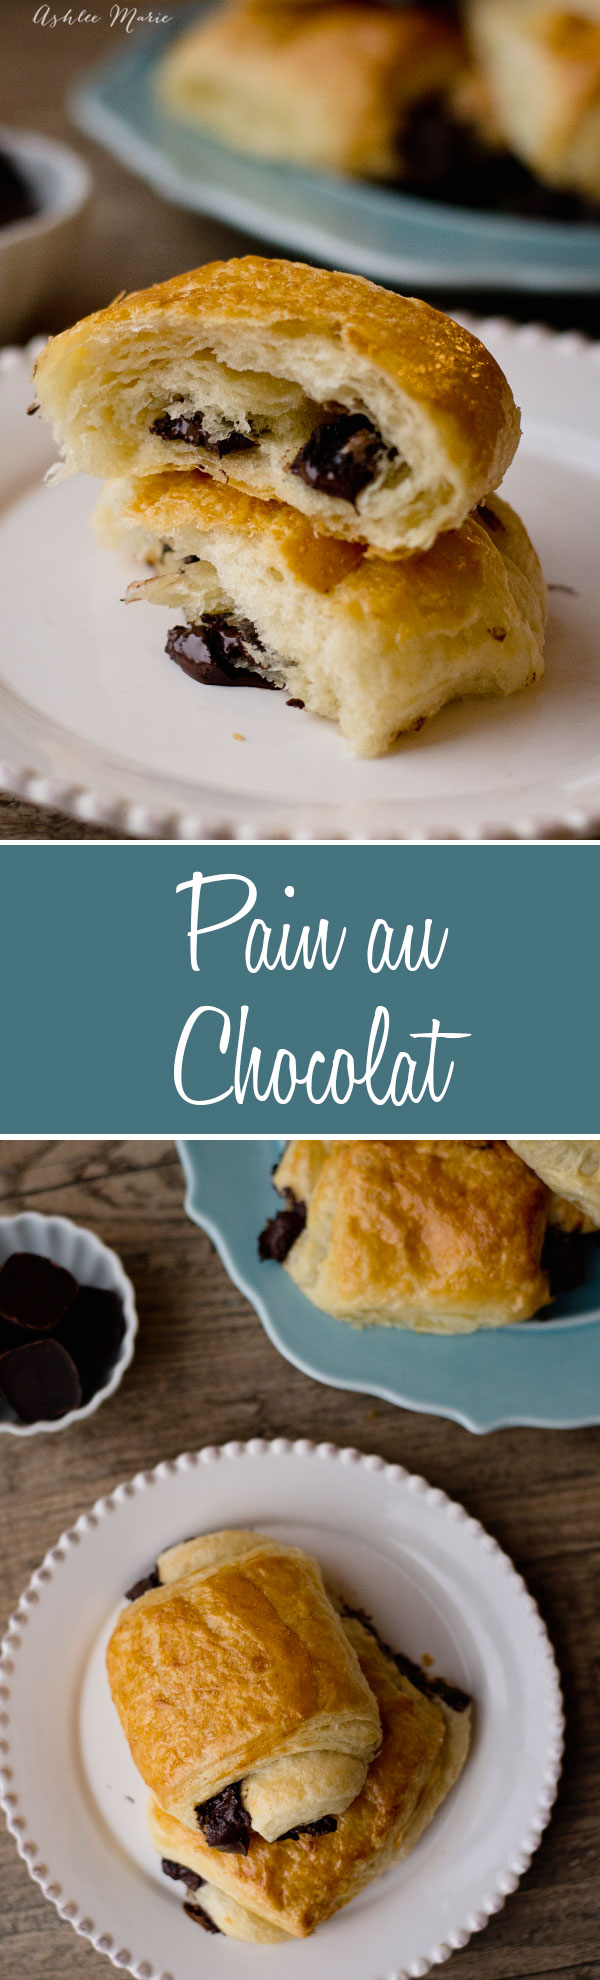 It doesn't get much better than flaky croissants, but pain au chocolat does that for me, dark chocolate filled croissant dough is my favorite thing to make and eat, this recipe includes a full video tutorial